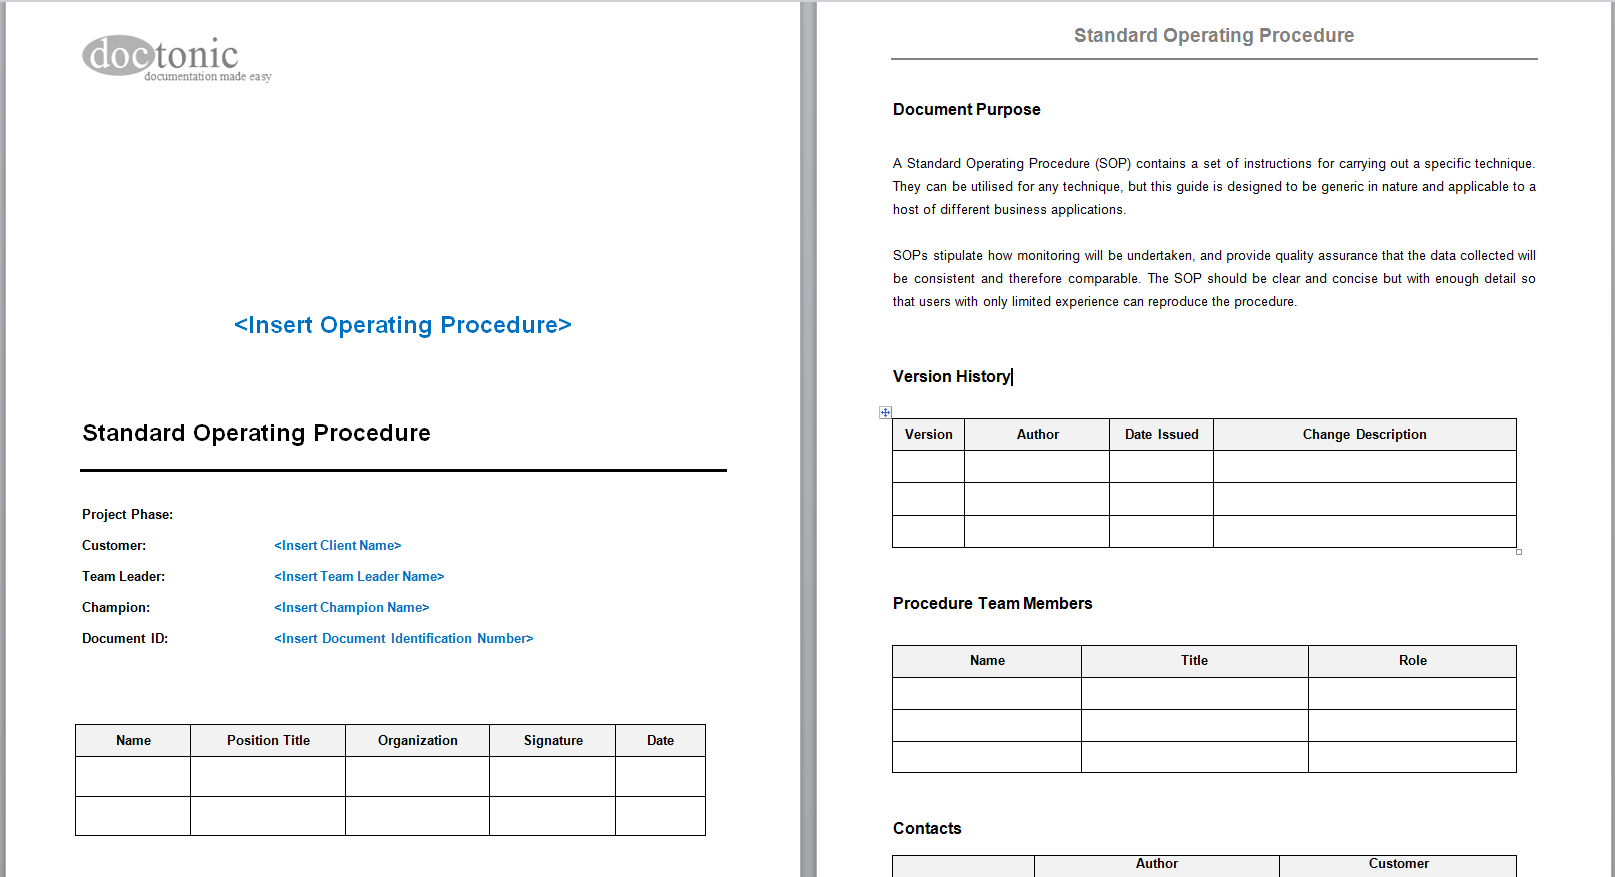 Home → Templates → Standard Operating Procedure (SOP) Template